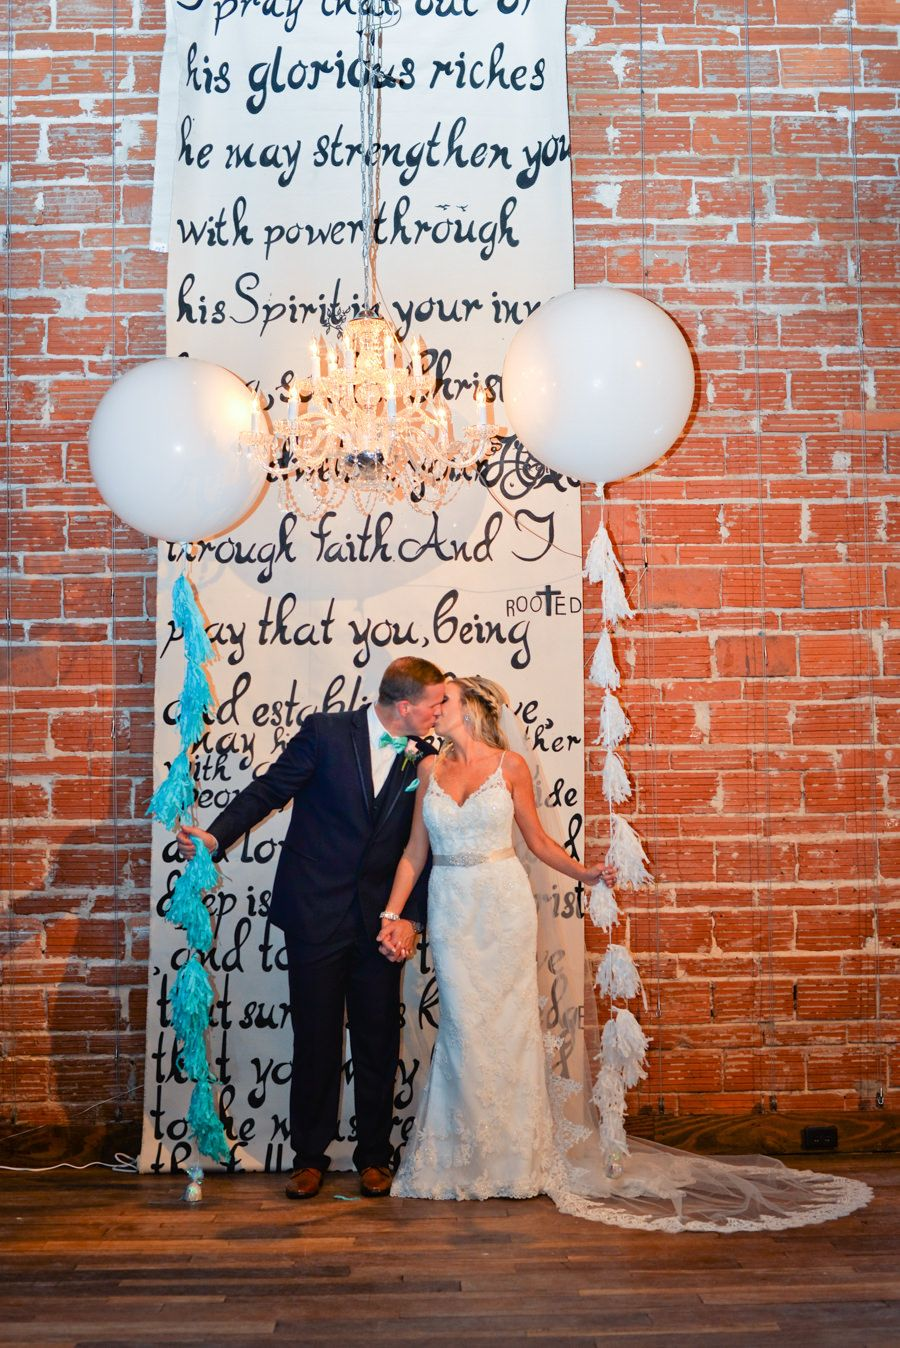 Wedding Ceremony Decor Calligraphy Vow Backdrop | Unique Romantic, Modern Downtown St. Pete Wedding Venue NOVA 535